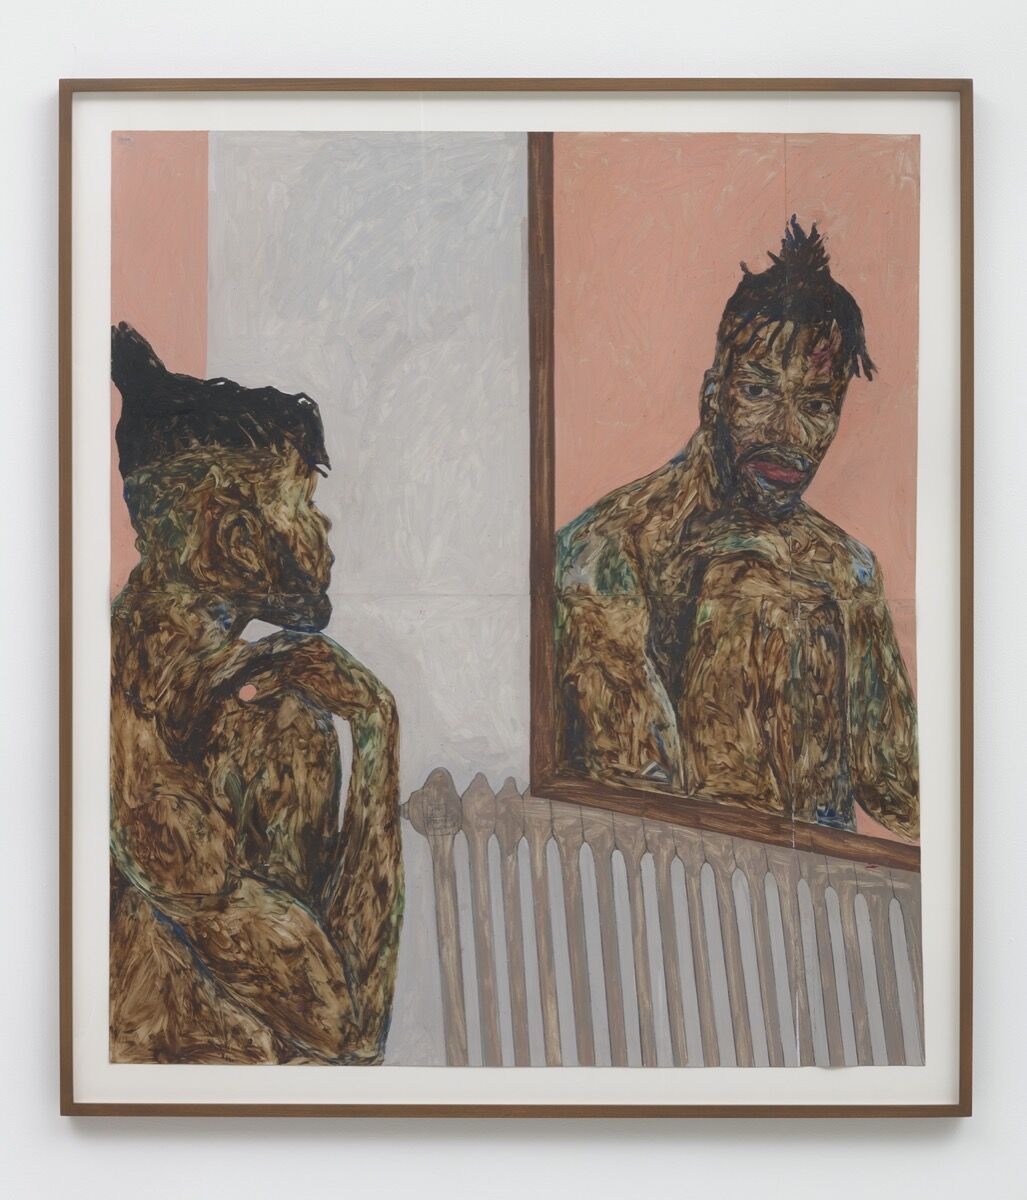 Amoako Boafo, Reflection 1, 2018. Courtesy of the artist and     Roberts Projects, Los Angeles, CA.